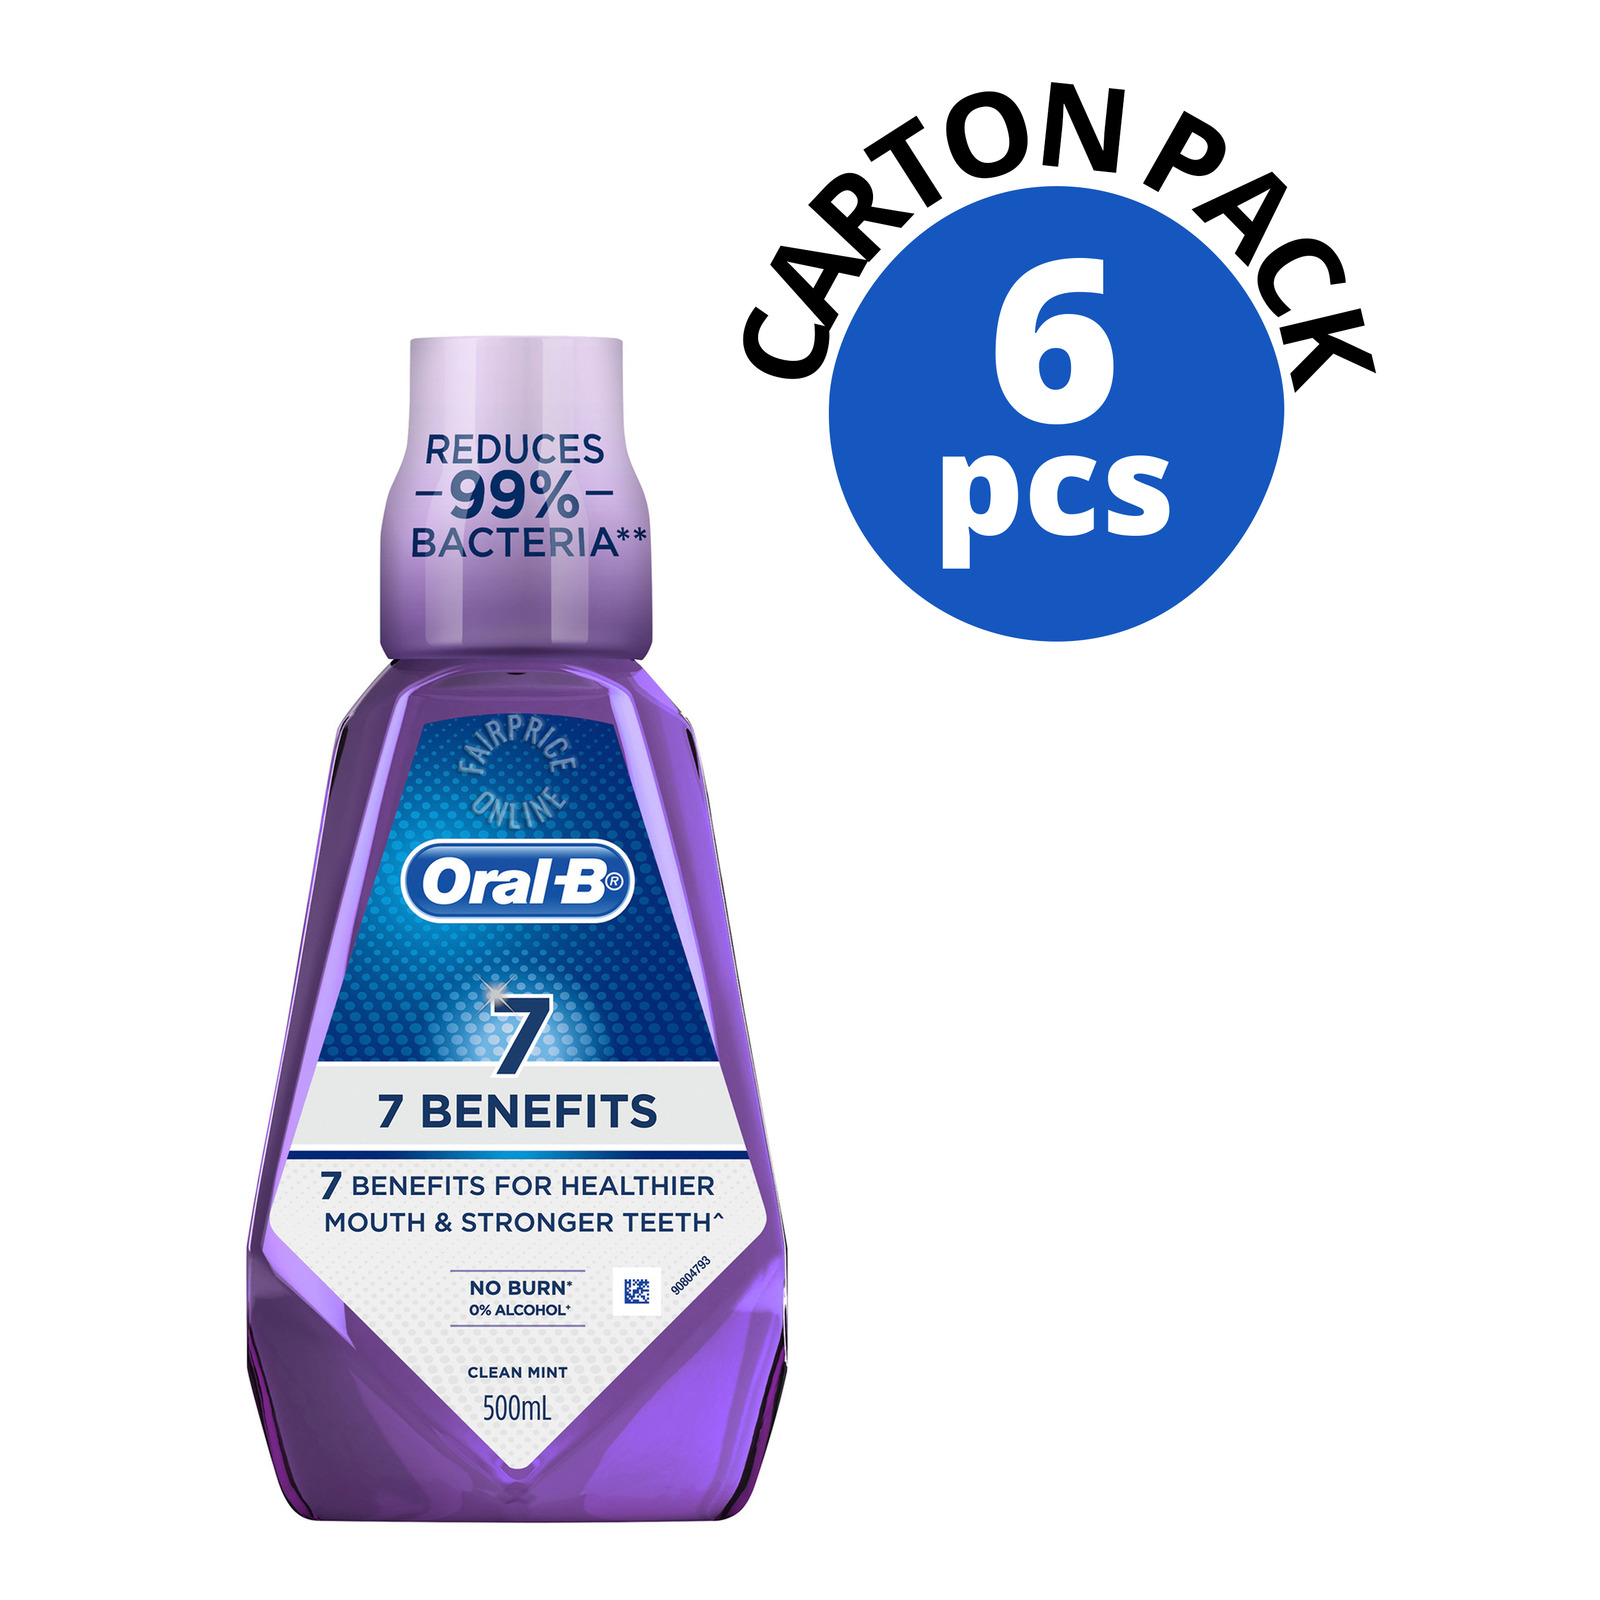 Oral-B 7 Benefits Mouthwash - Clean Mint